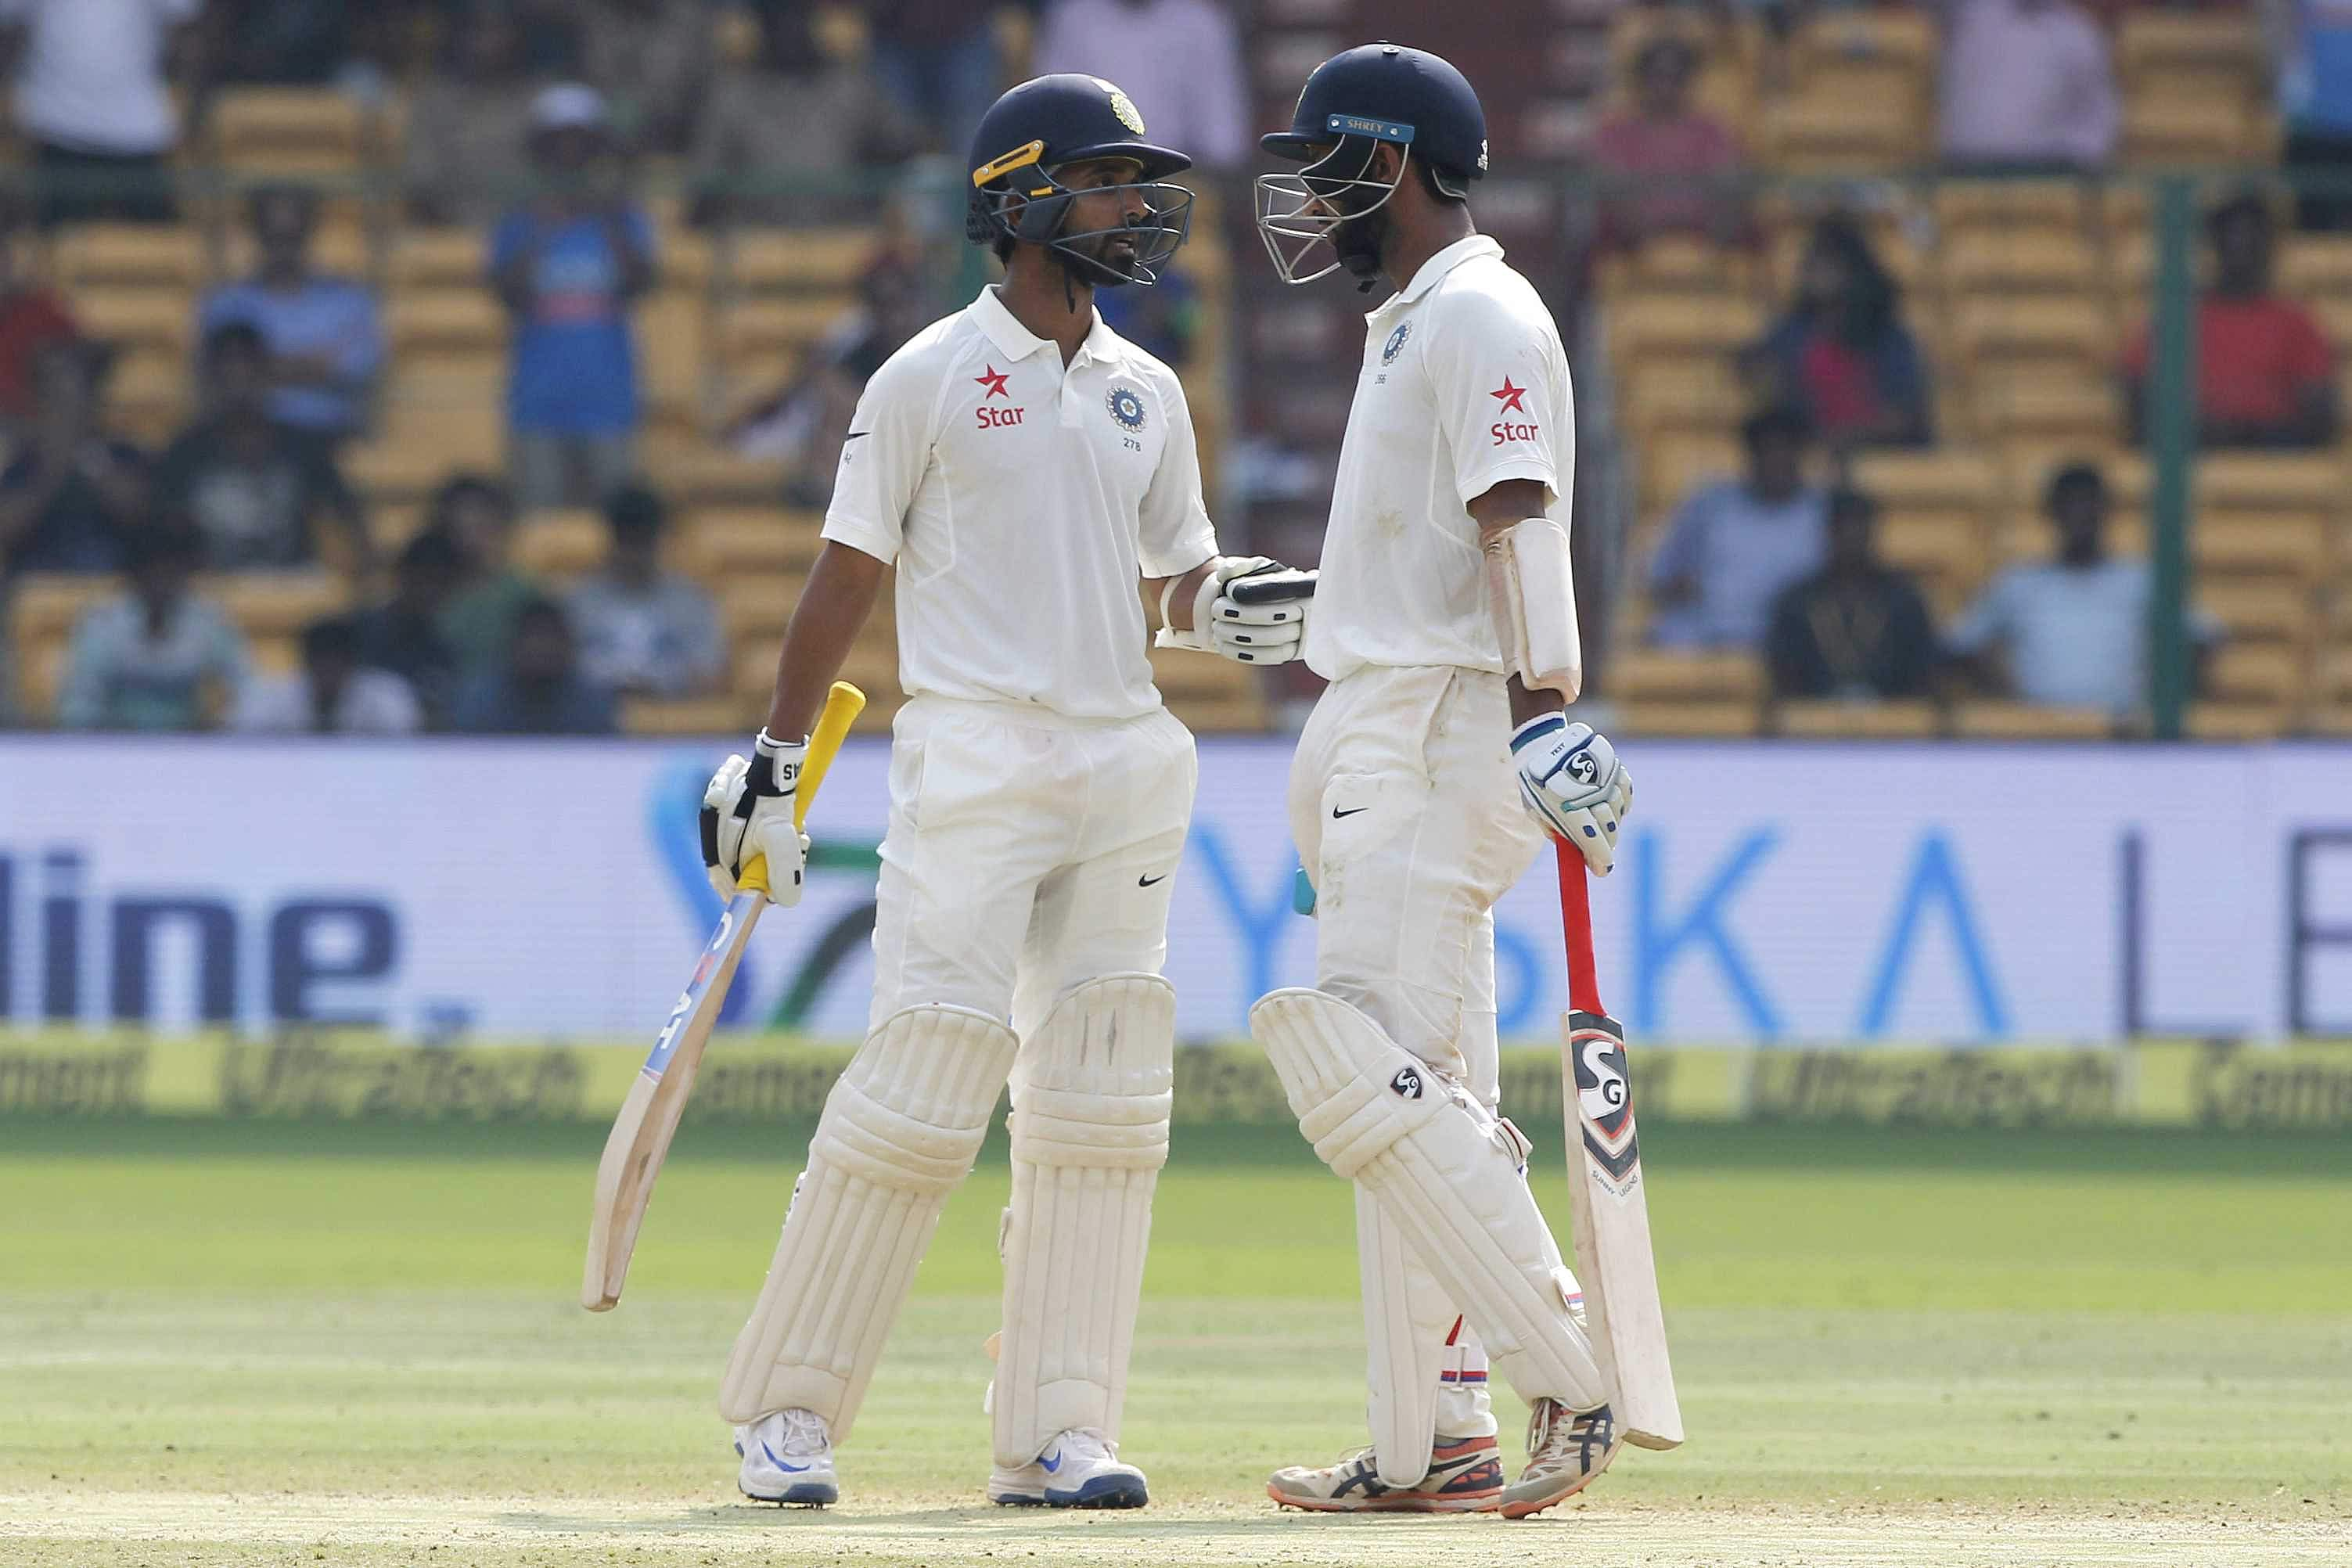 Pujara, Rahane consolidate in a testing session